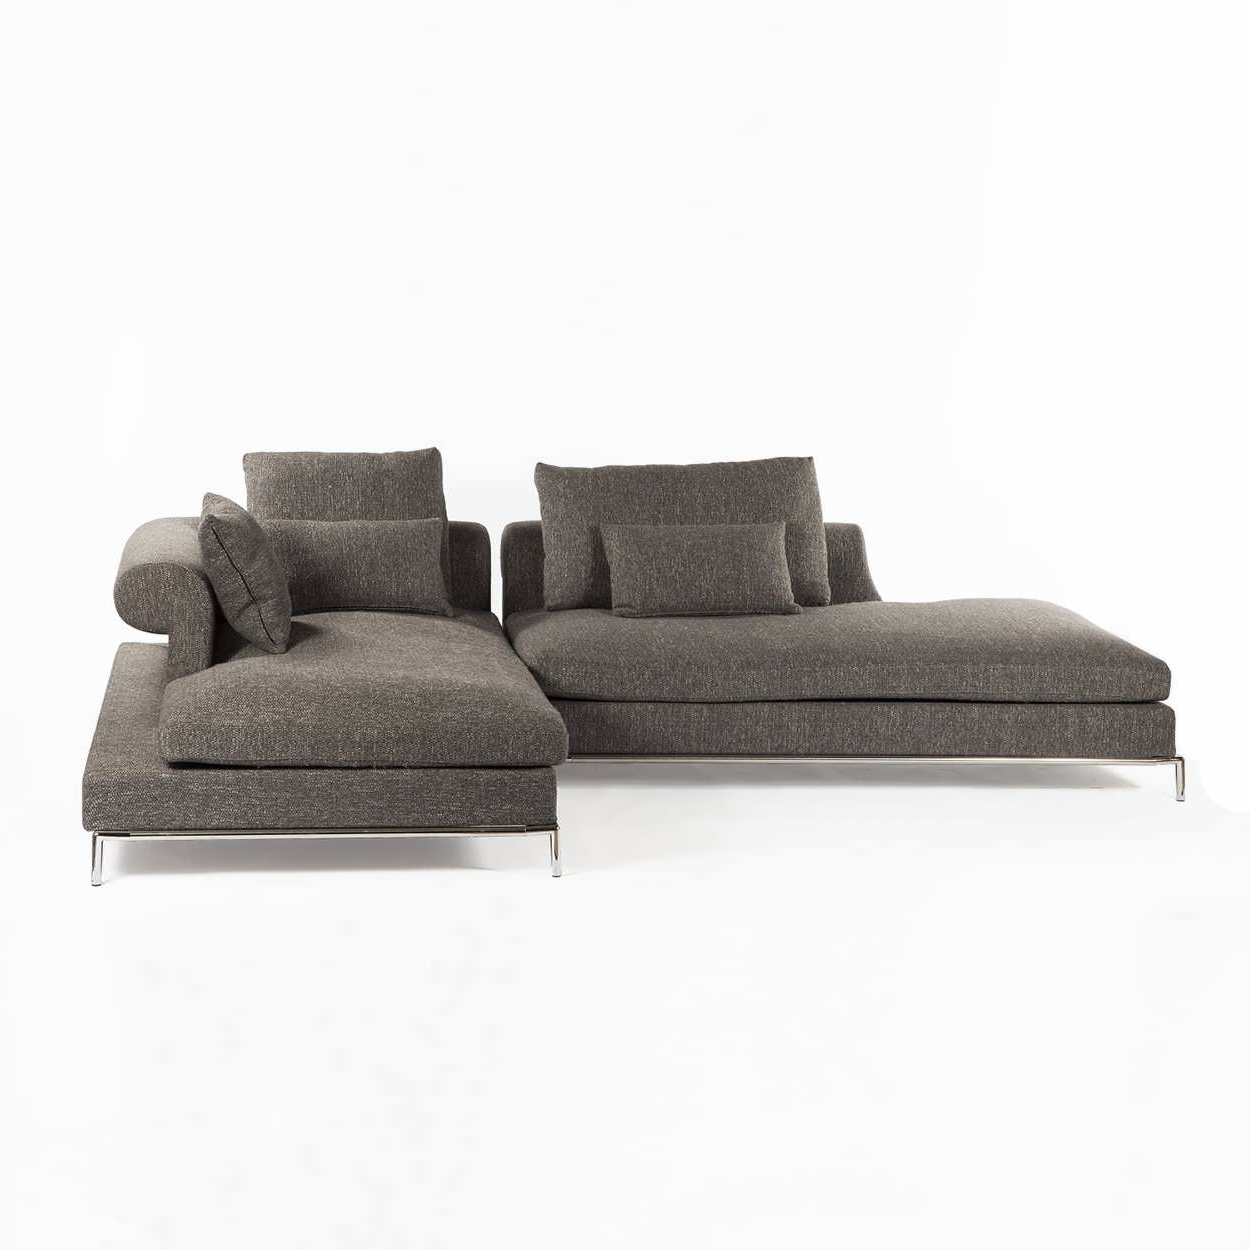 Preferred Modern Chaise Sofas Within Sofa : Large Sectional Sofas L Shaped Couch Leather Couch With (View 10 of 15)